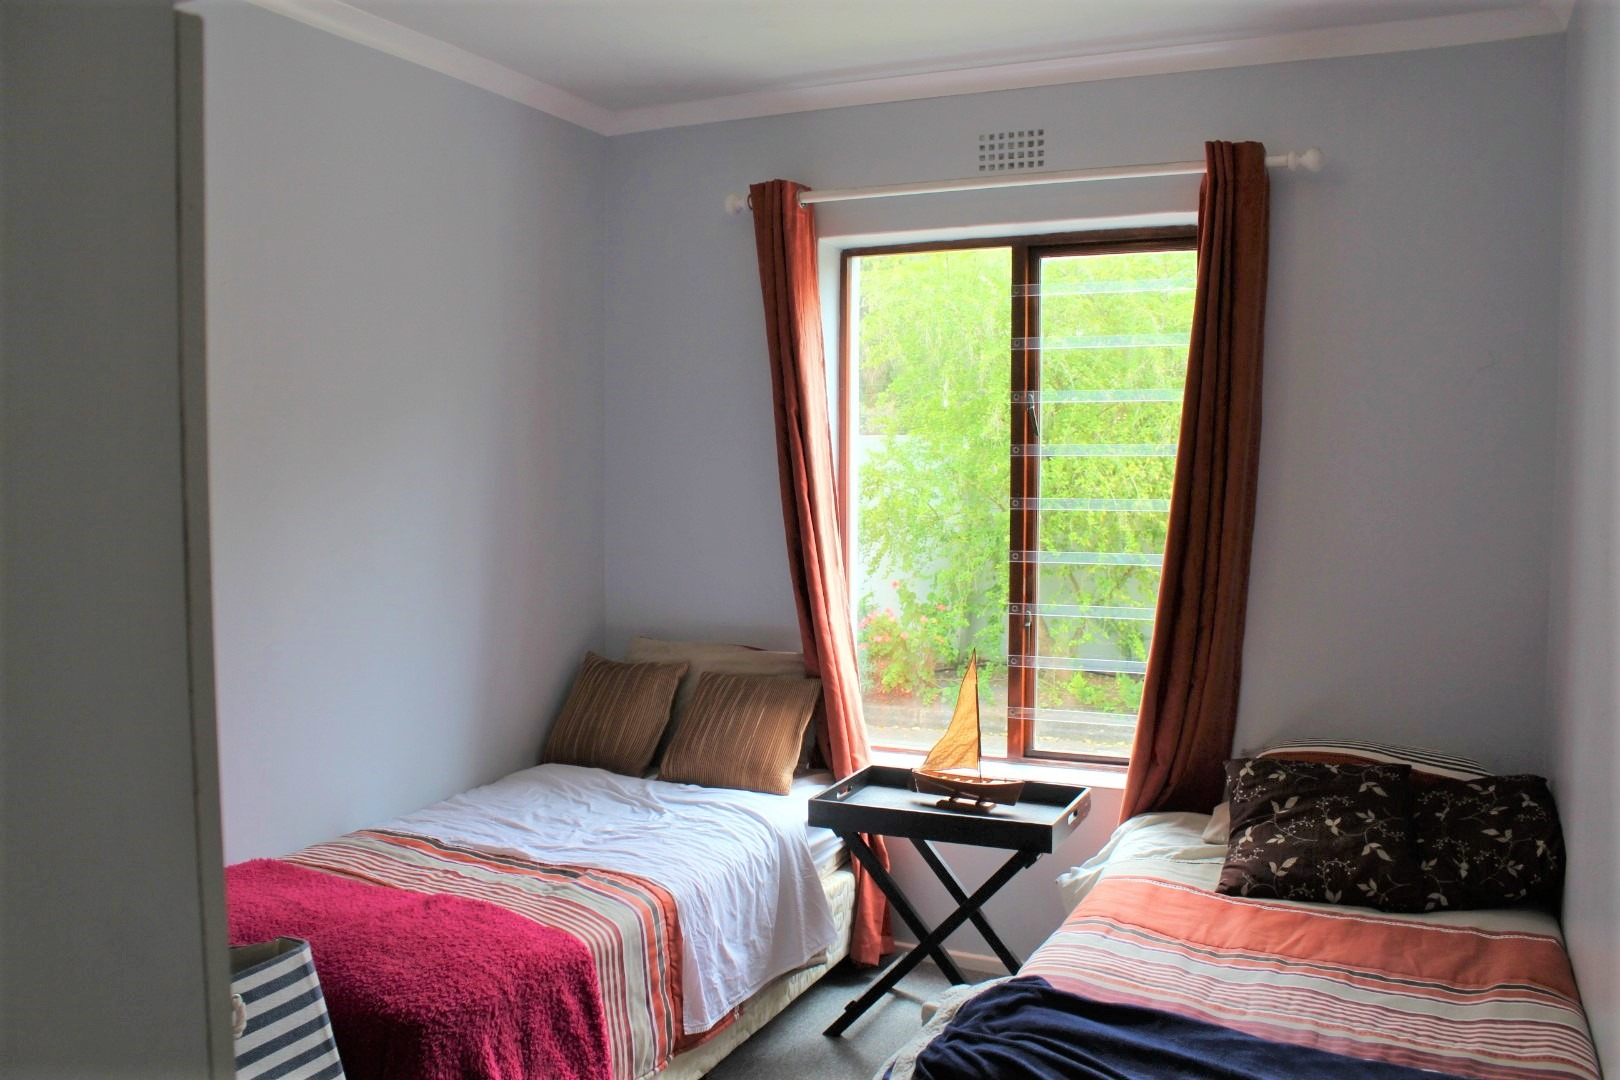 3 Bedroom Apartment / Flat For Sale in Old Place